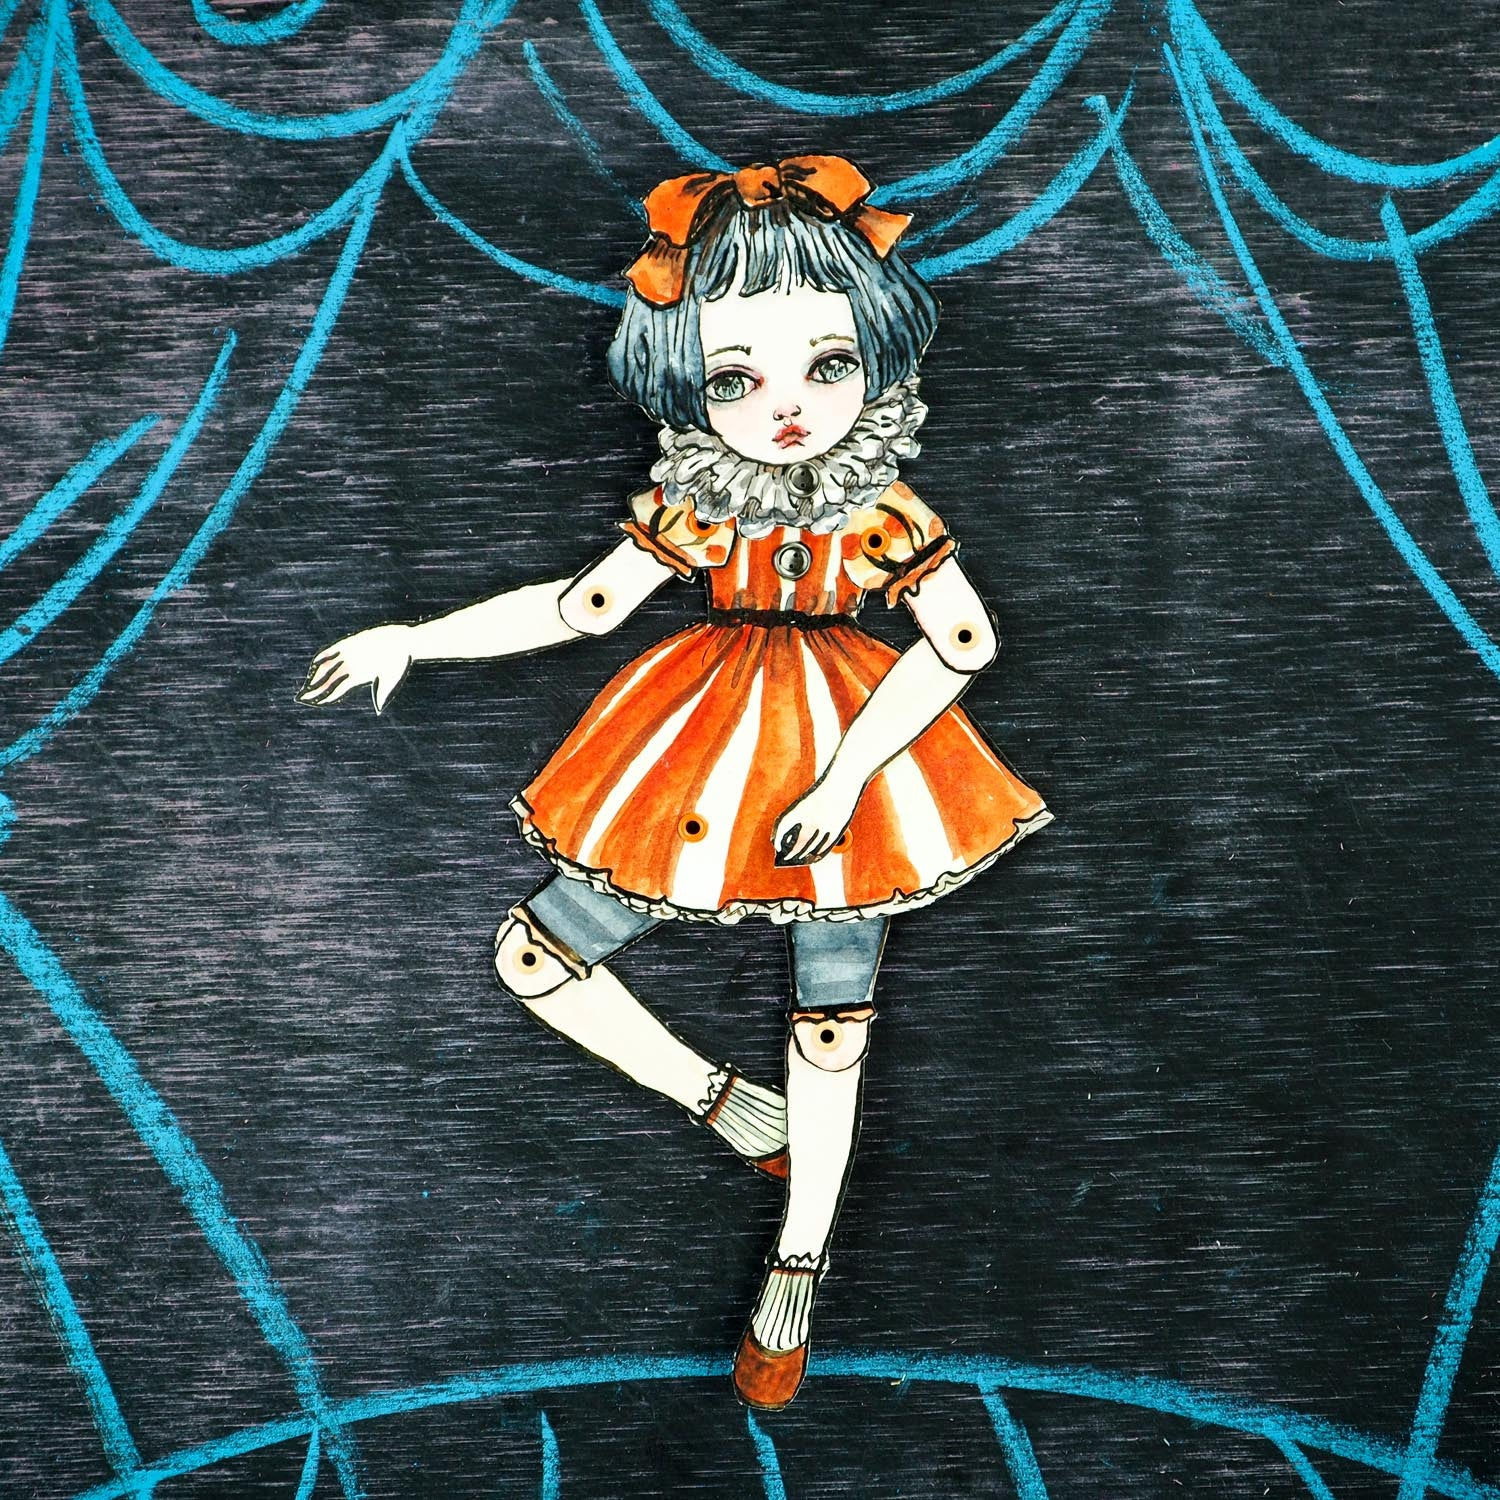 AN ORANGE BALLERINA, Art Doll by Danita Art